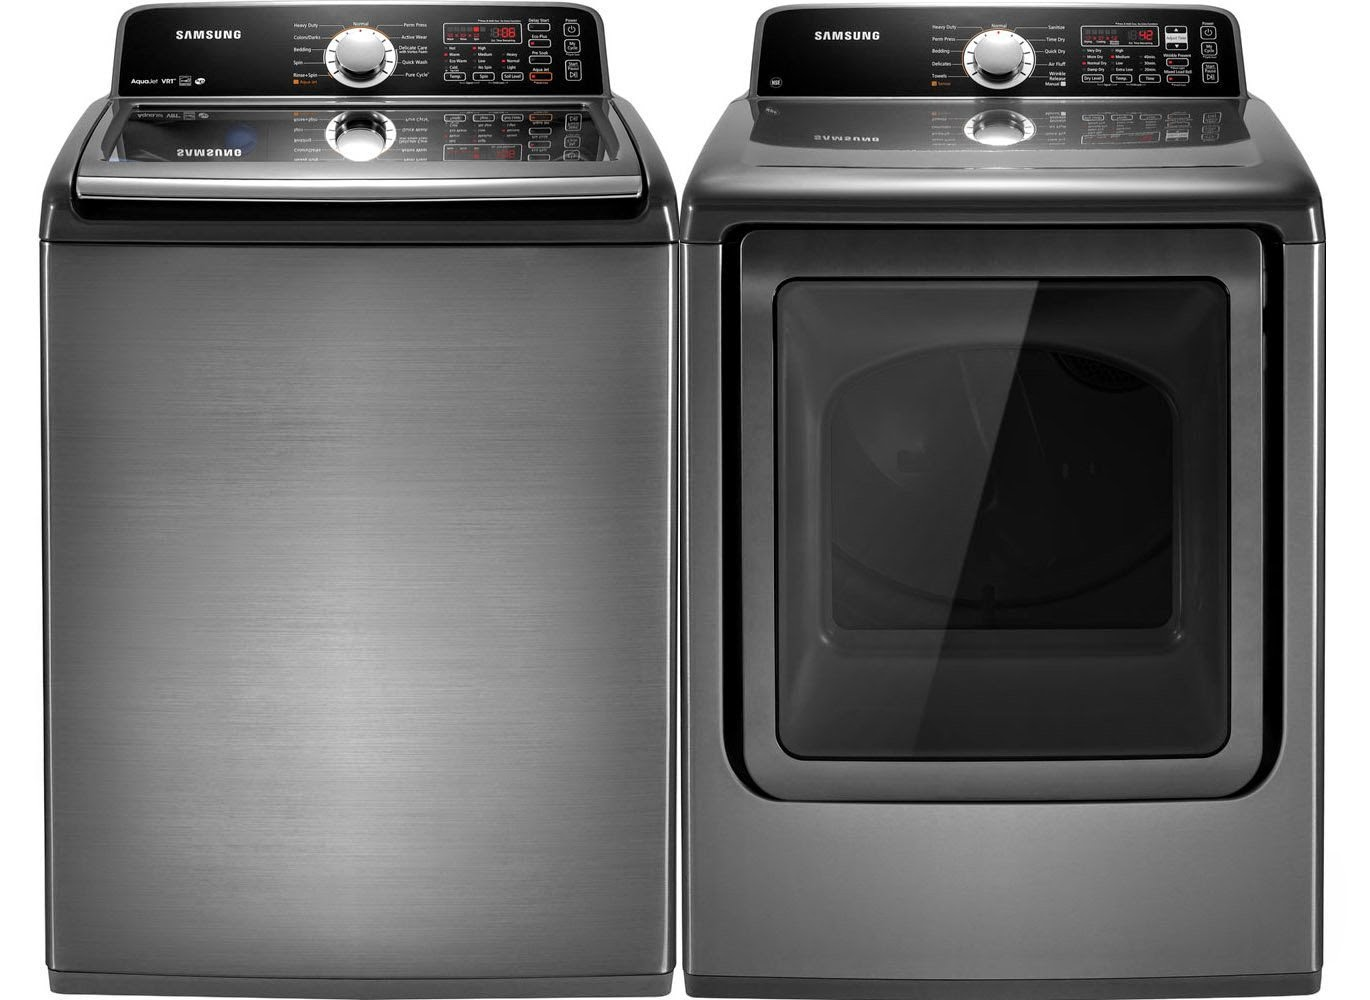 Miele stackable washer dryer ventless - Samsung Platinum King Size Smart Care Top Load Laundry Sets